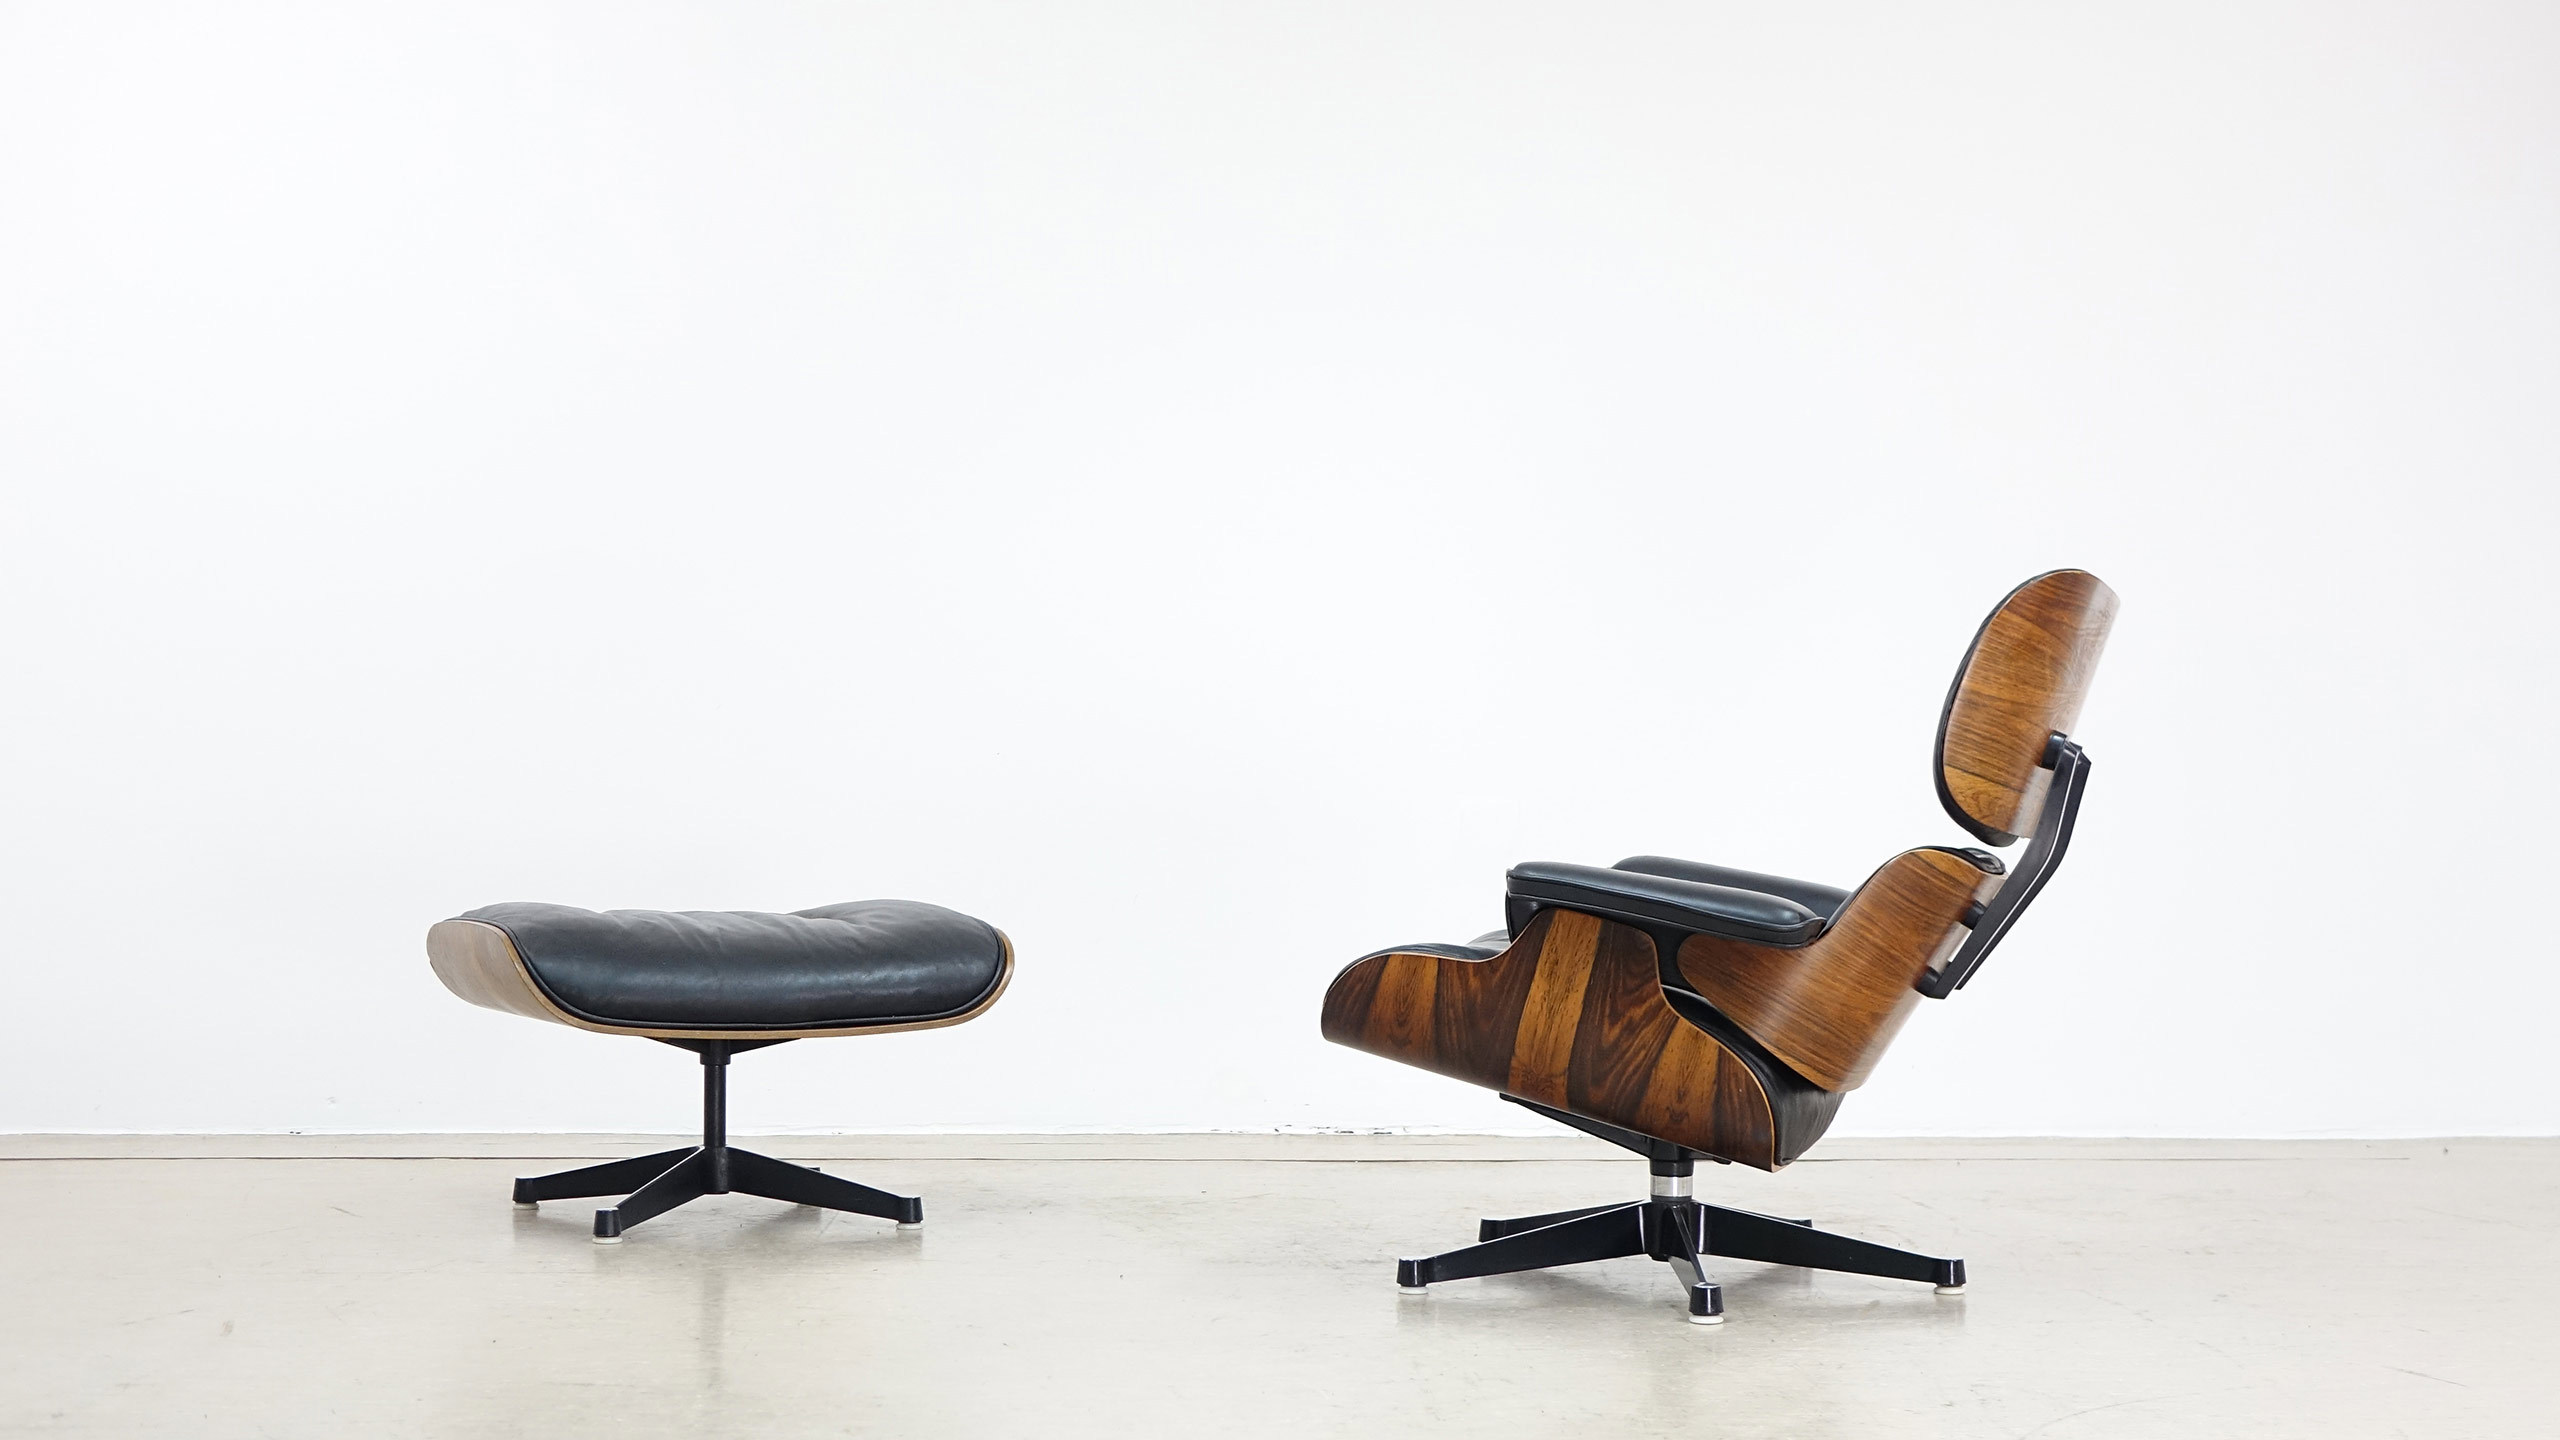 Eames Lounge Stoel : Charles ray eames lounge chair by contura fehlbaum